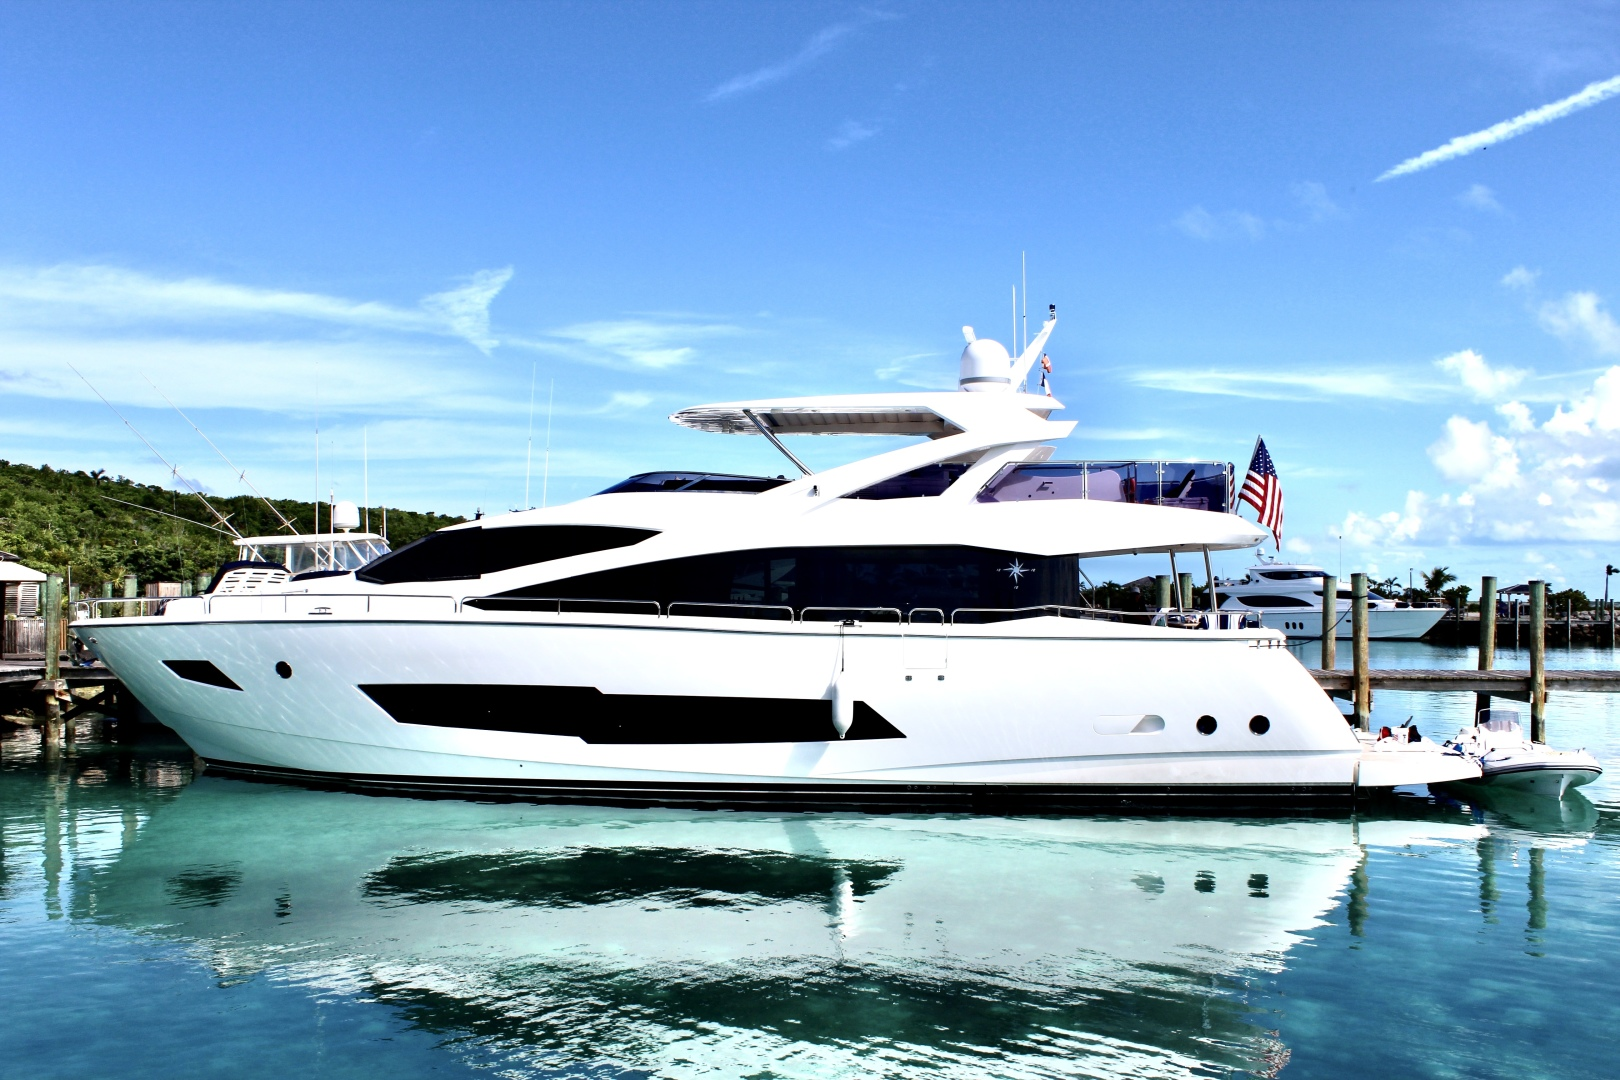 Sunseeker-86 Yacht 2019-Its Noon Somewhere Fort Lauderdale-Florida-United States-1556643 | Thumbnail